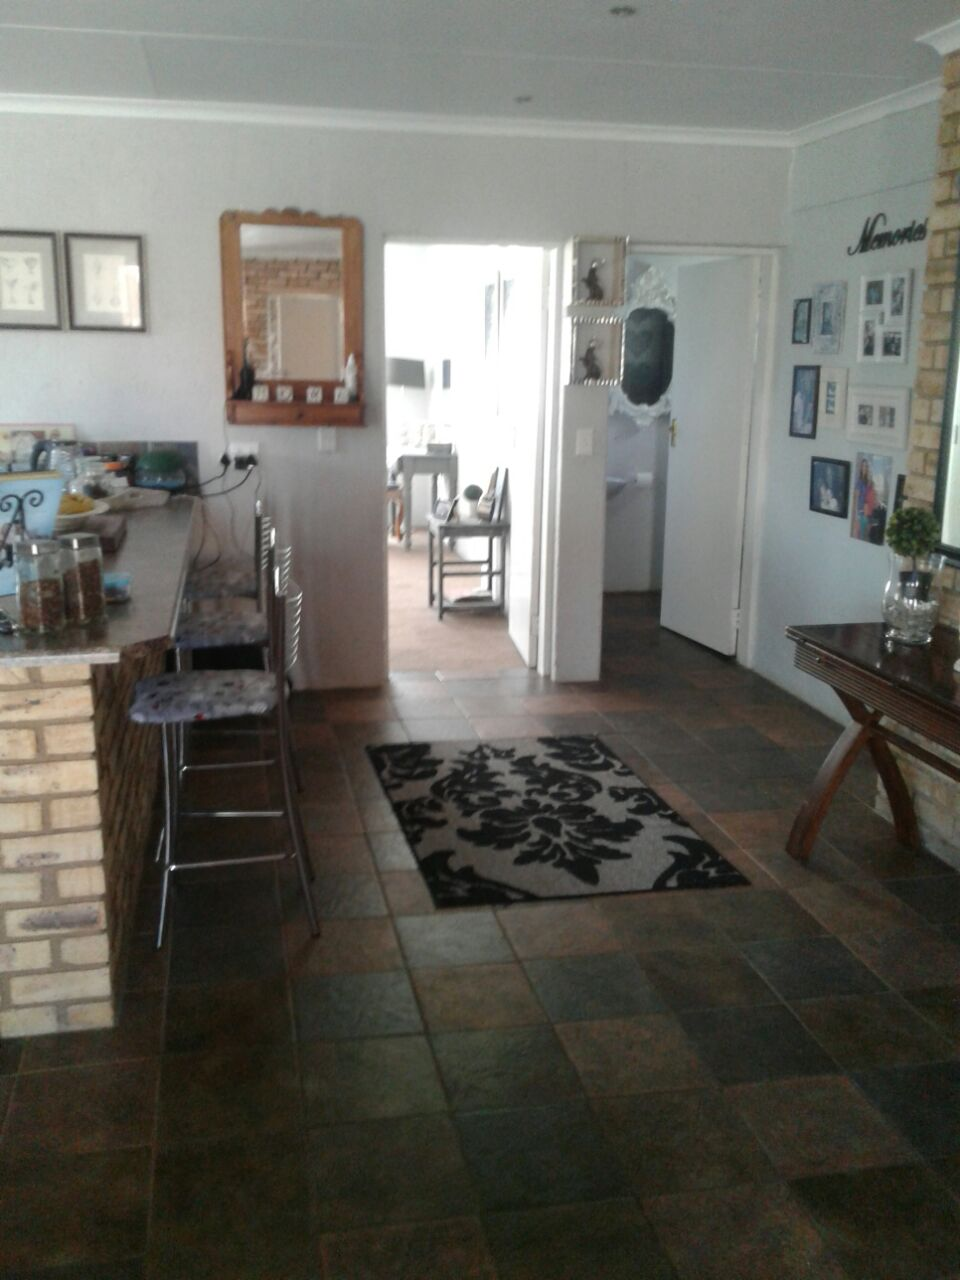 Krugersdorp. Beautiful very spacious house to let. ONLY R 7200 per month. Neat. Safe Secure Central. Dogs welcome.